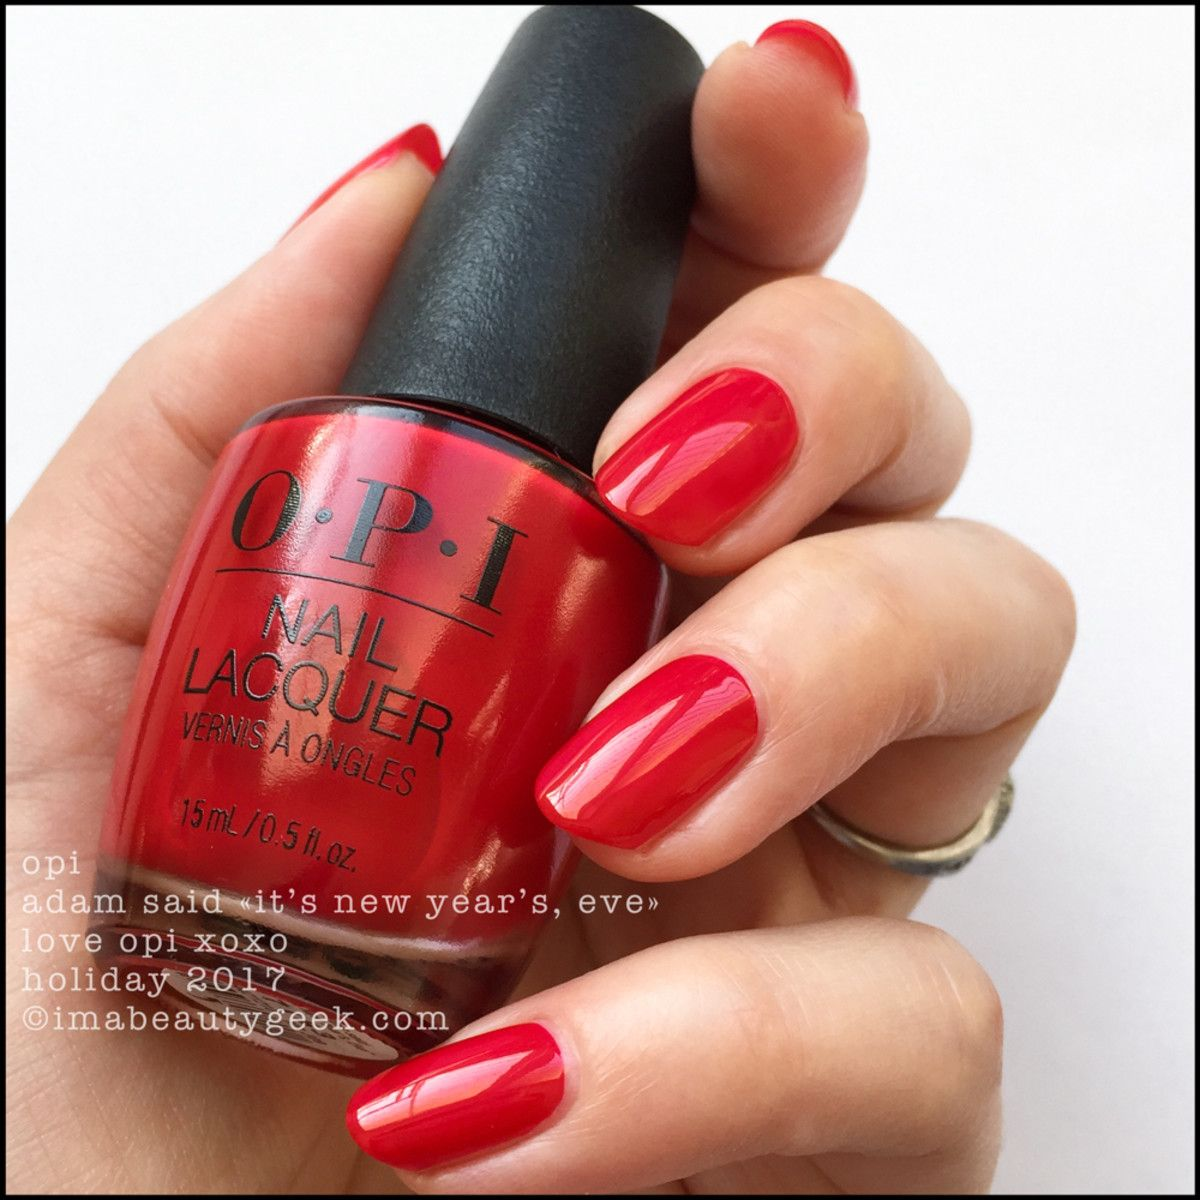 LOVE OPI XOXO HOLIDAY 2017 SWATCHES & REVIEW Opi red